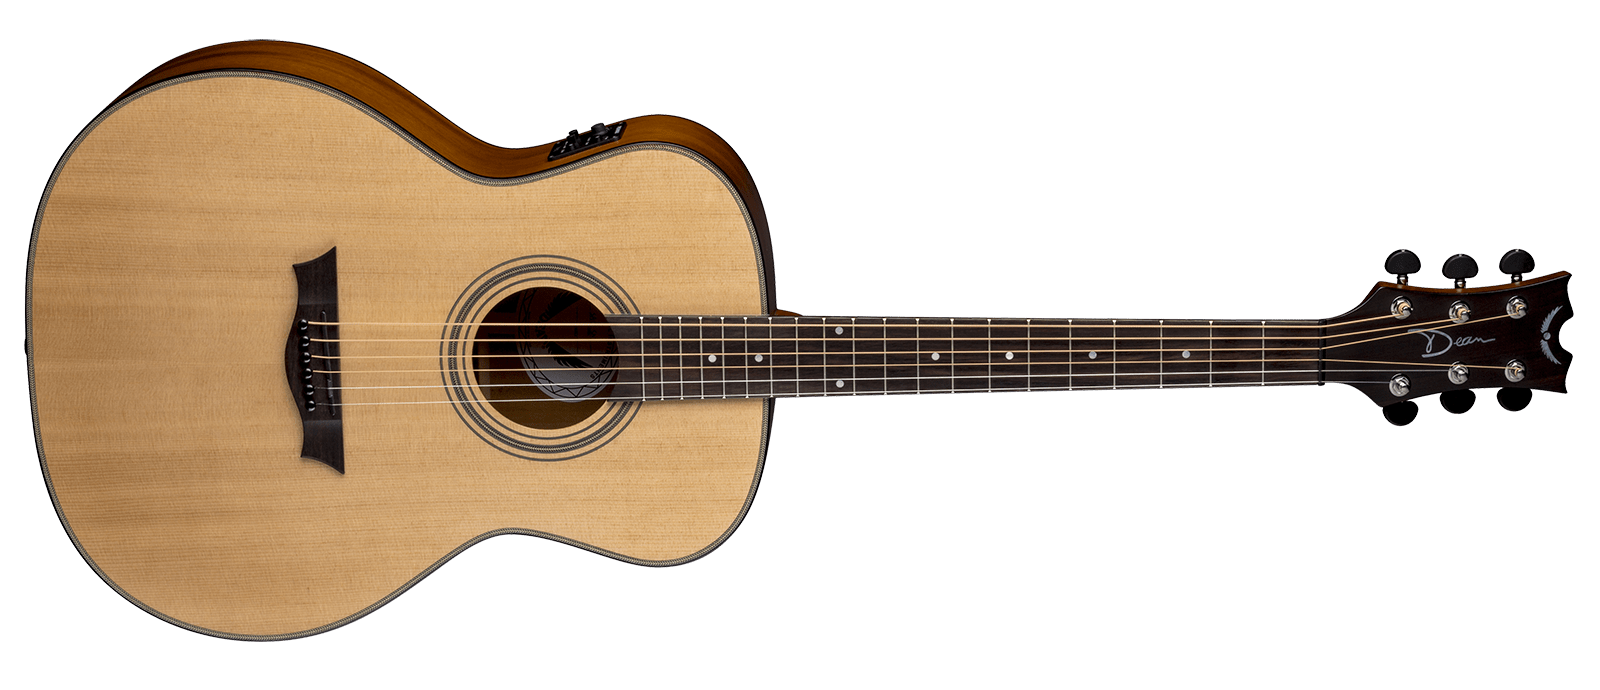 St. Augustine Concert Solid Wood A/E SN